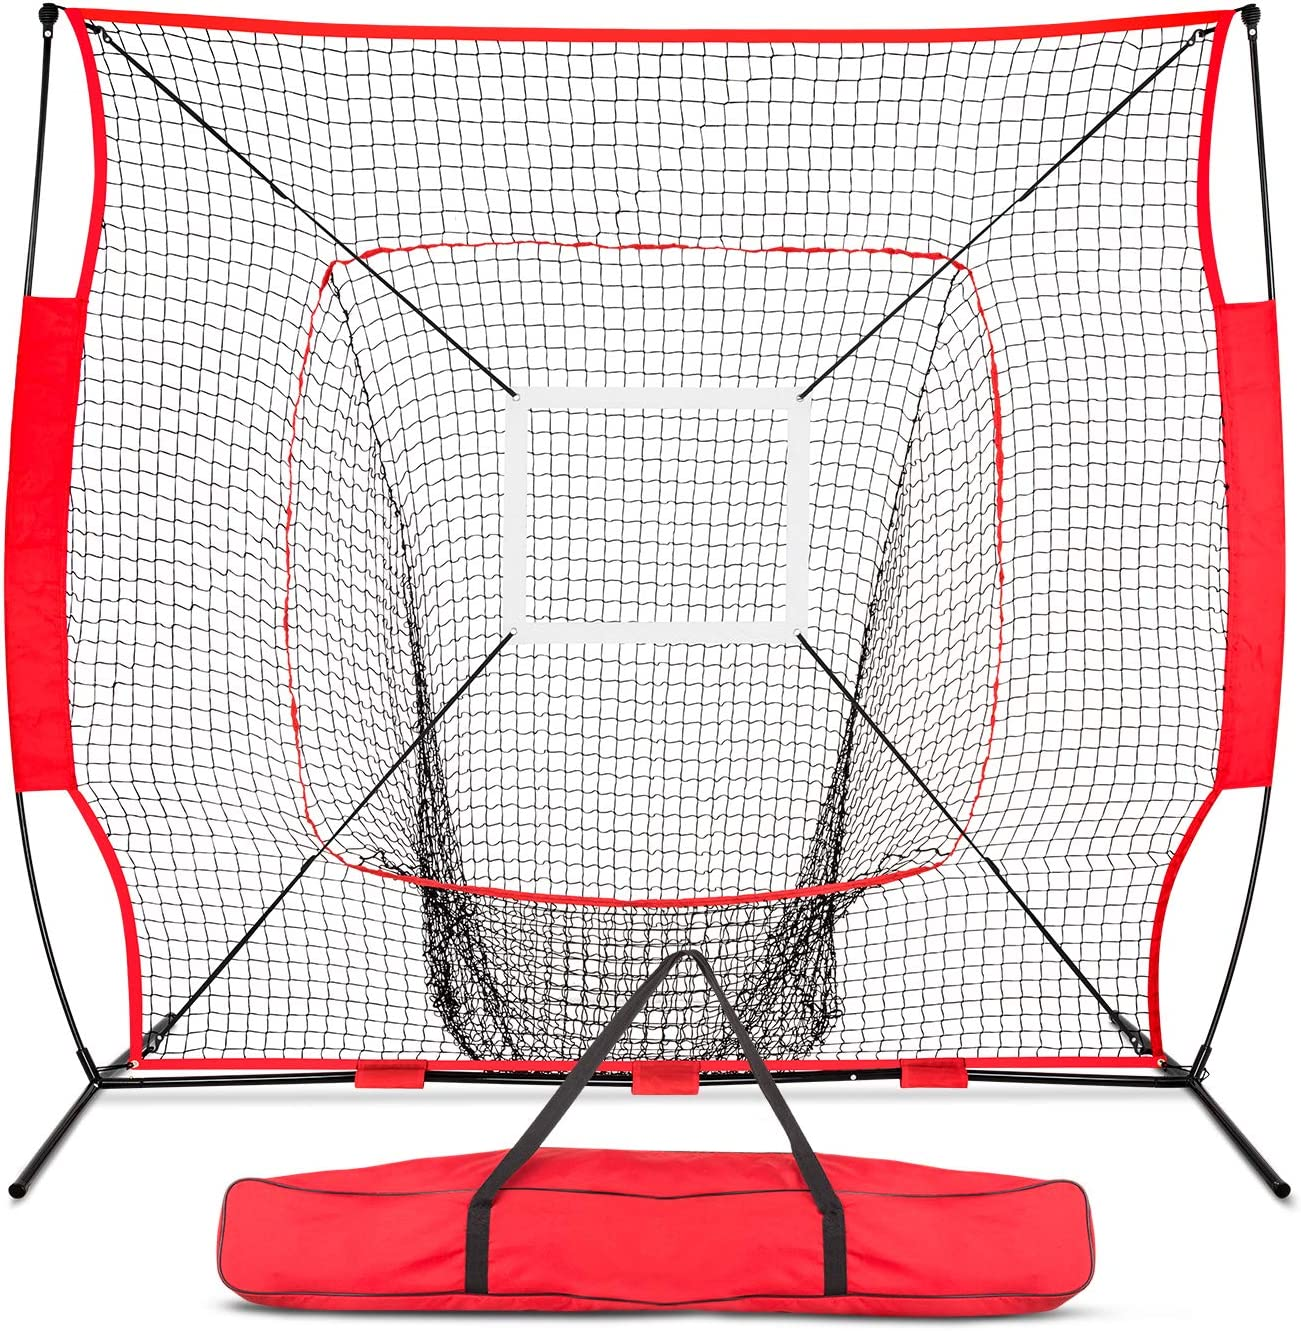 ORIENGEAR 7×7 Portable Baseball Net for Hitting Batting Pitching with Strike Zone Carry Bag